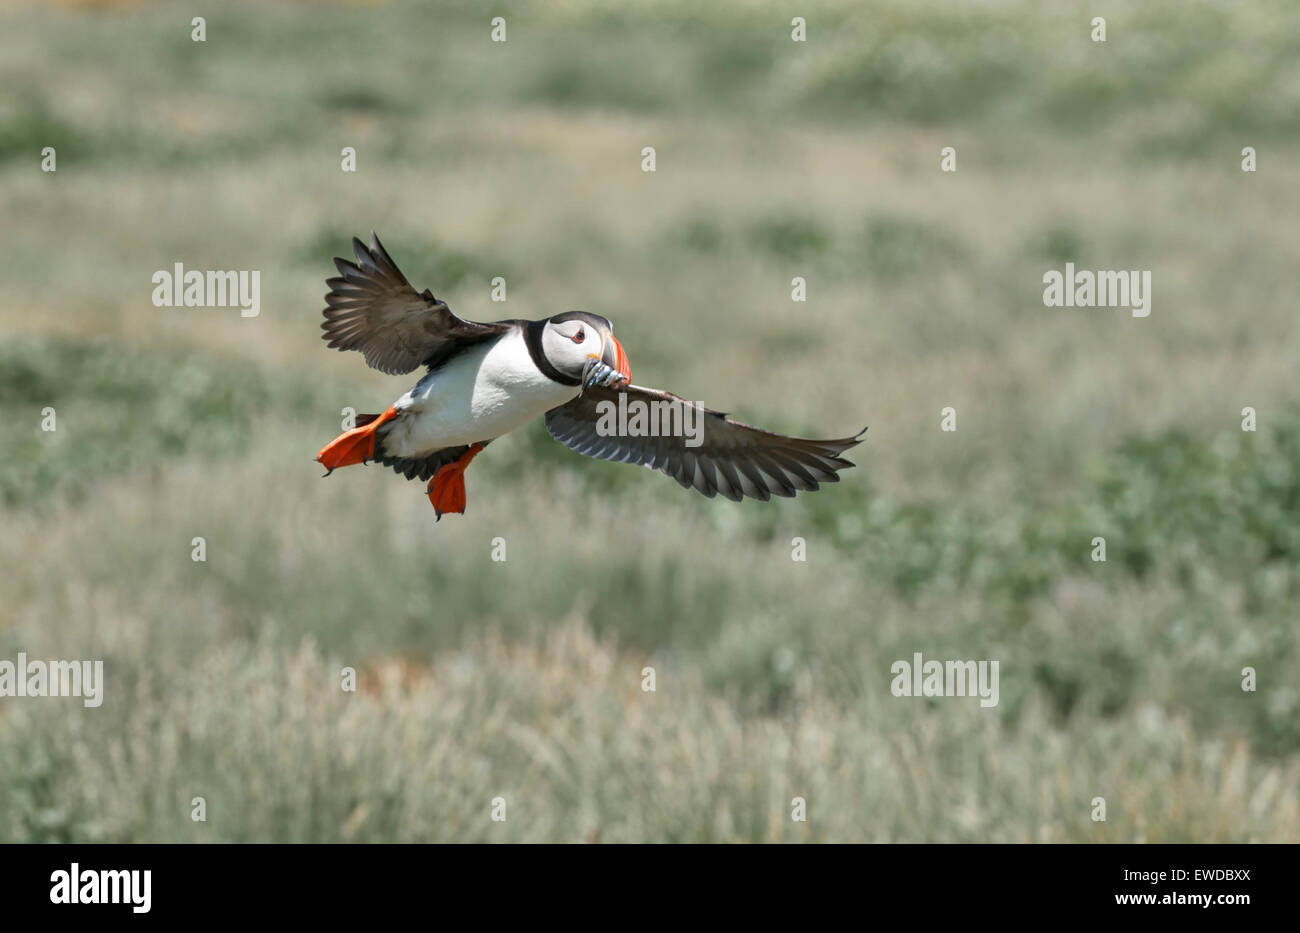 Puffin flying back over land to nest burrow with beak full of sandeels Stock Photo